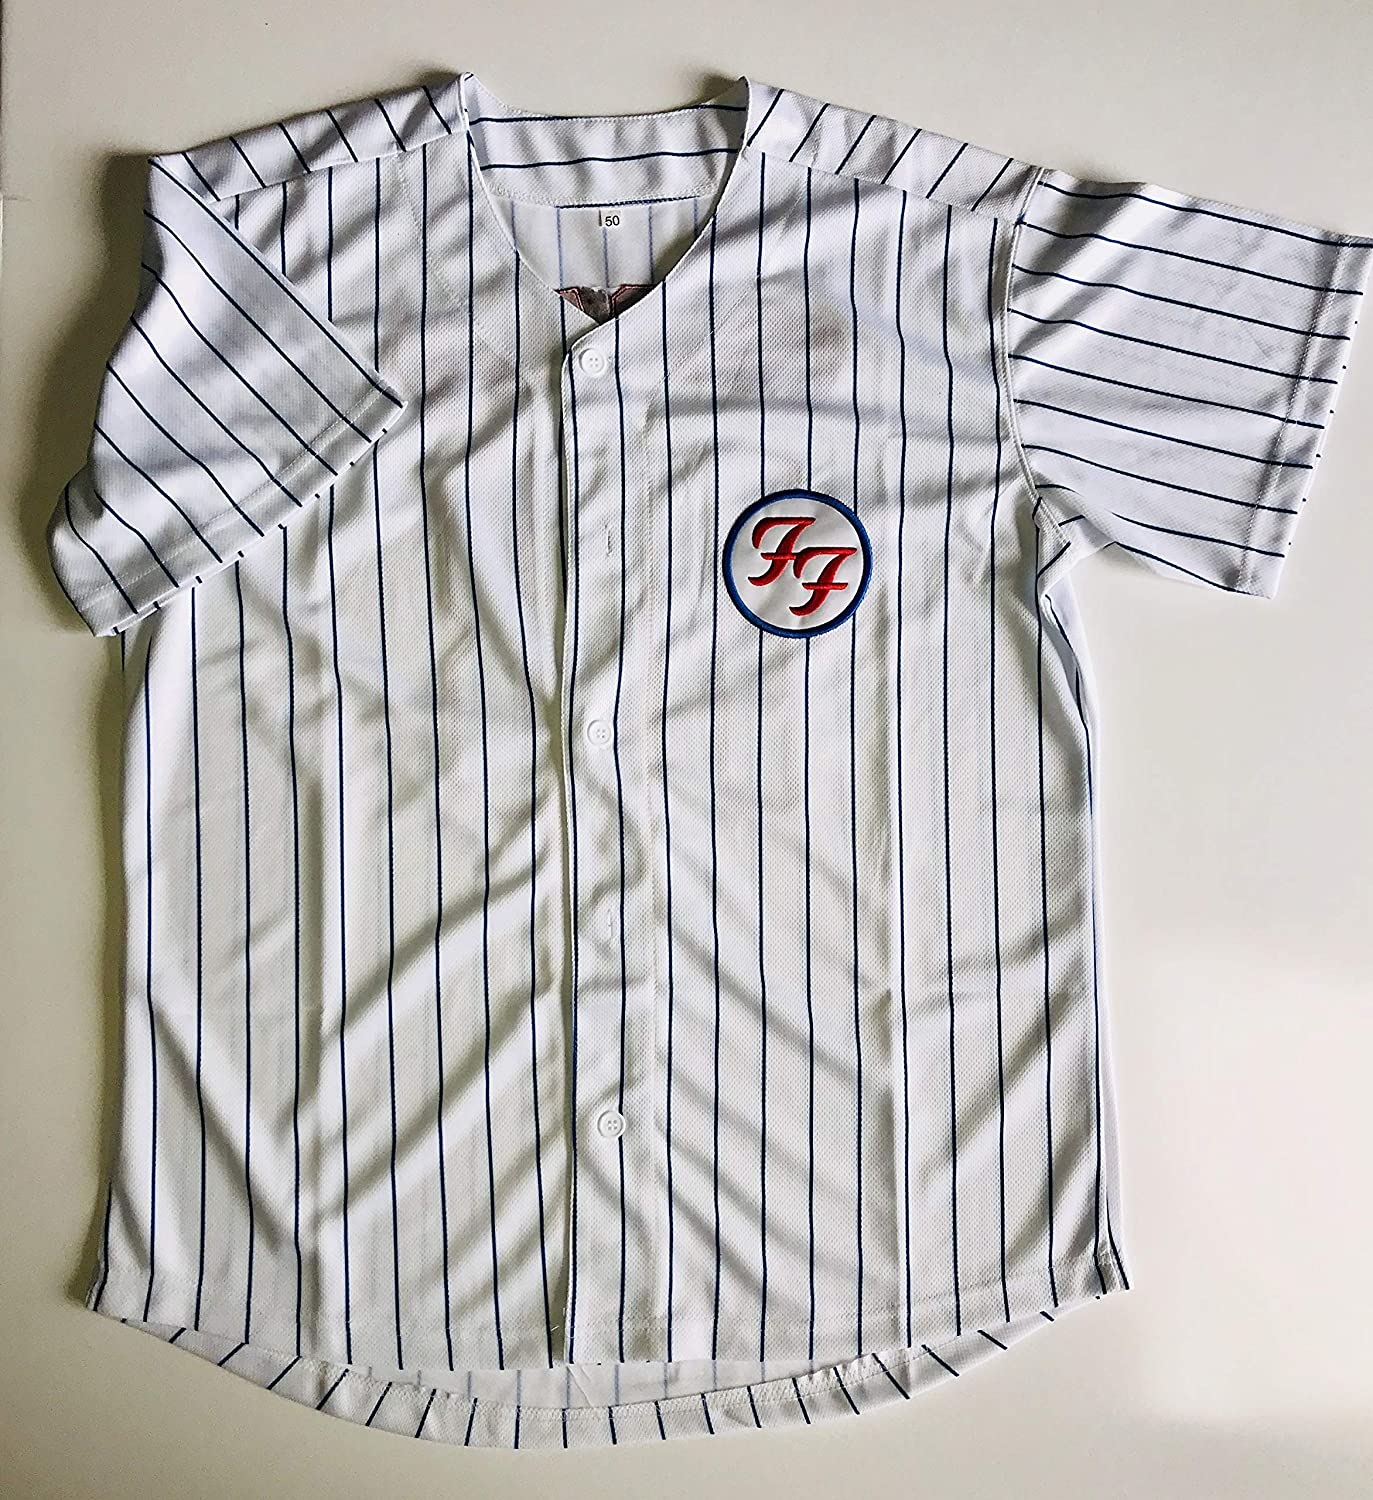 Foo Fighters jersey chicago cubs wrigley field baseball large 2018 tour new